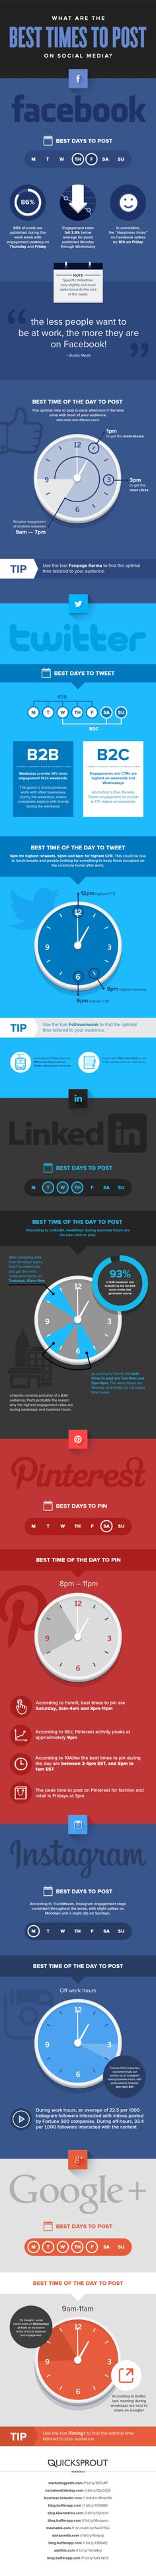 The Best Times to Post on Social Media #SMM #SocialMediaTips